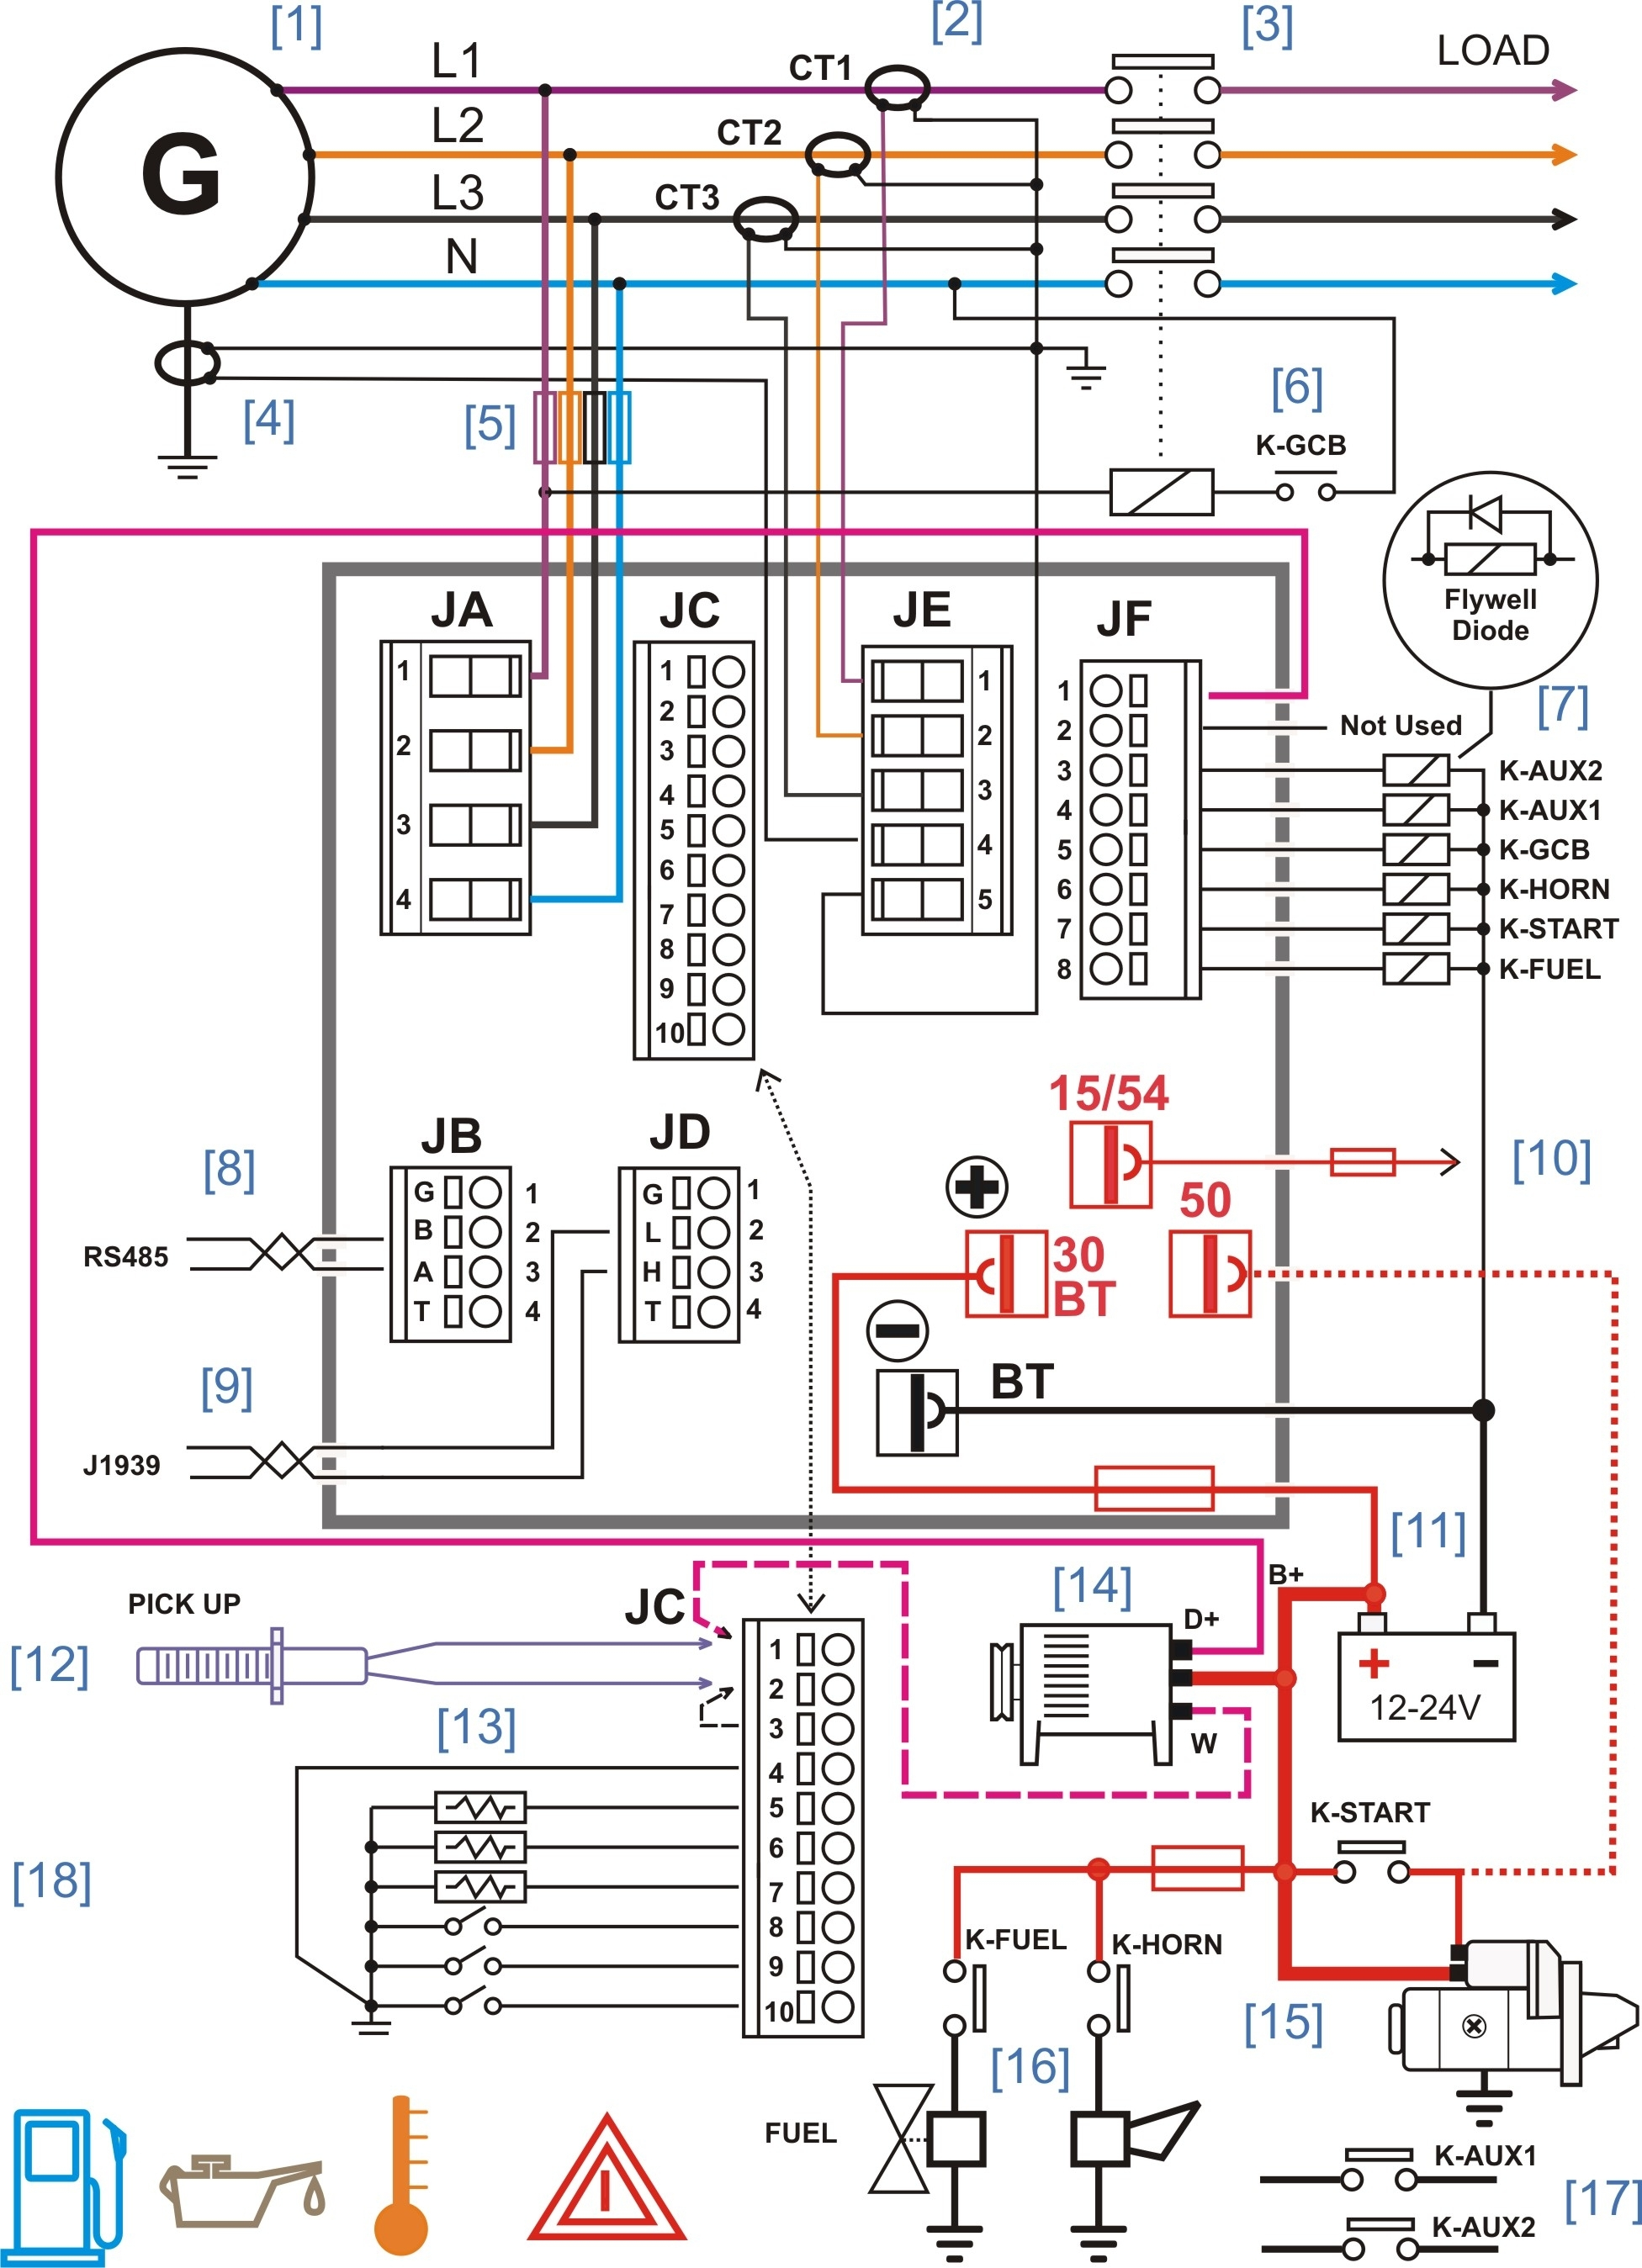 Ke70 wiring diagram image collections diagram and writign diagram proton wira wiring diagram chemical structure drawer ke70 wiring booklet pomen yala mini usb wire diagram asfbconference2016 Images